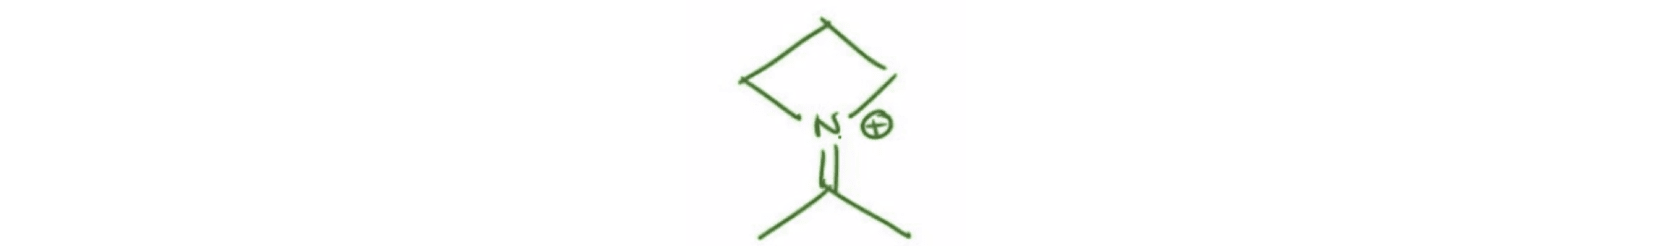 Iminium Cation of an Enamine